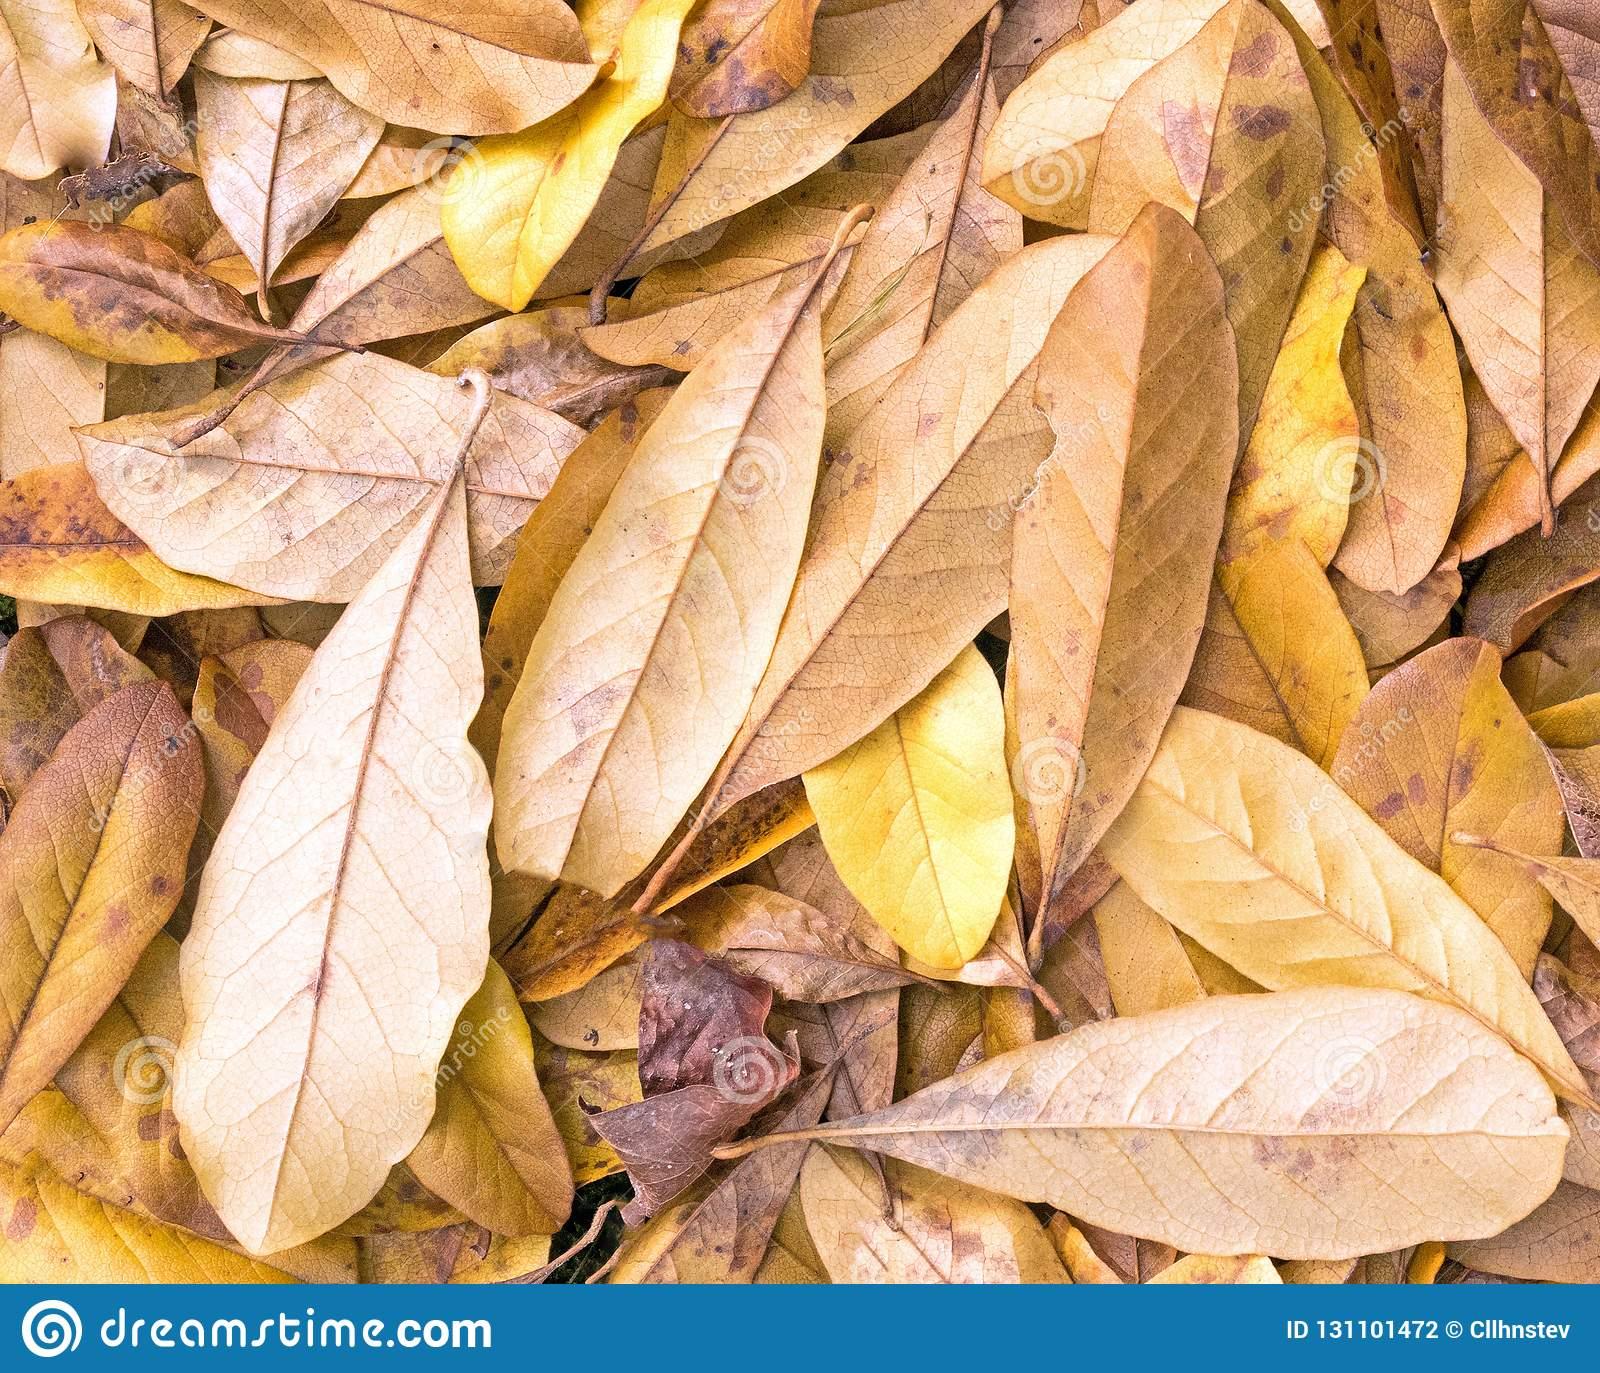 Fallen Yellow Star Magnolia Leaves Stock Photo Image Of Star